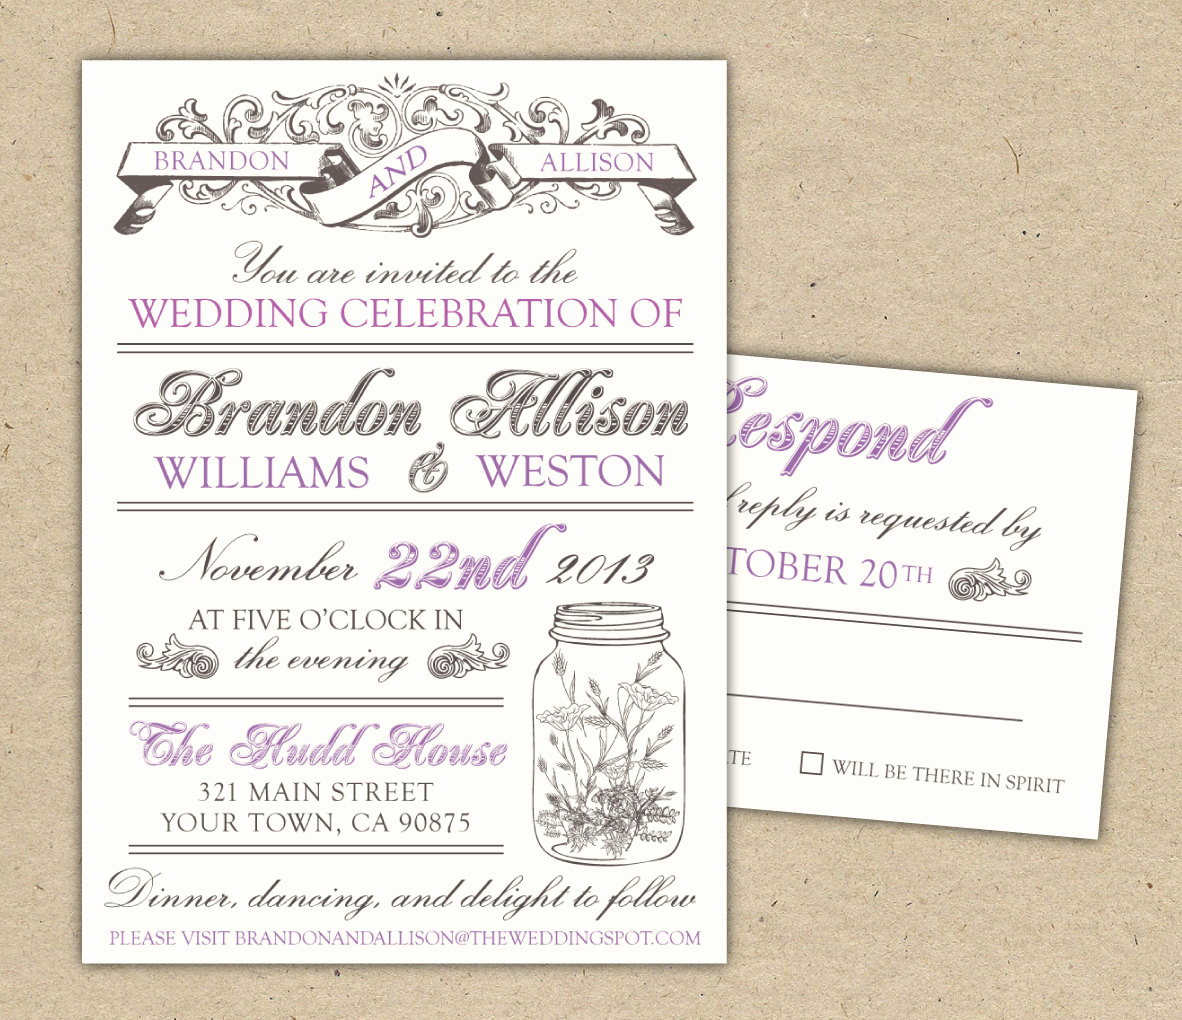 Free Downloadable Wedding Invitation Templates Unique 30 Unique Vintage Wedding Invitations